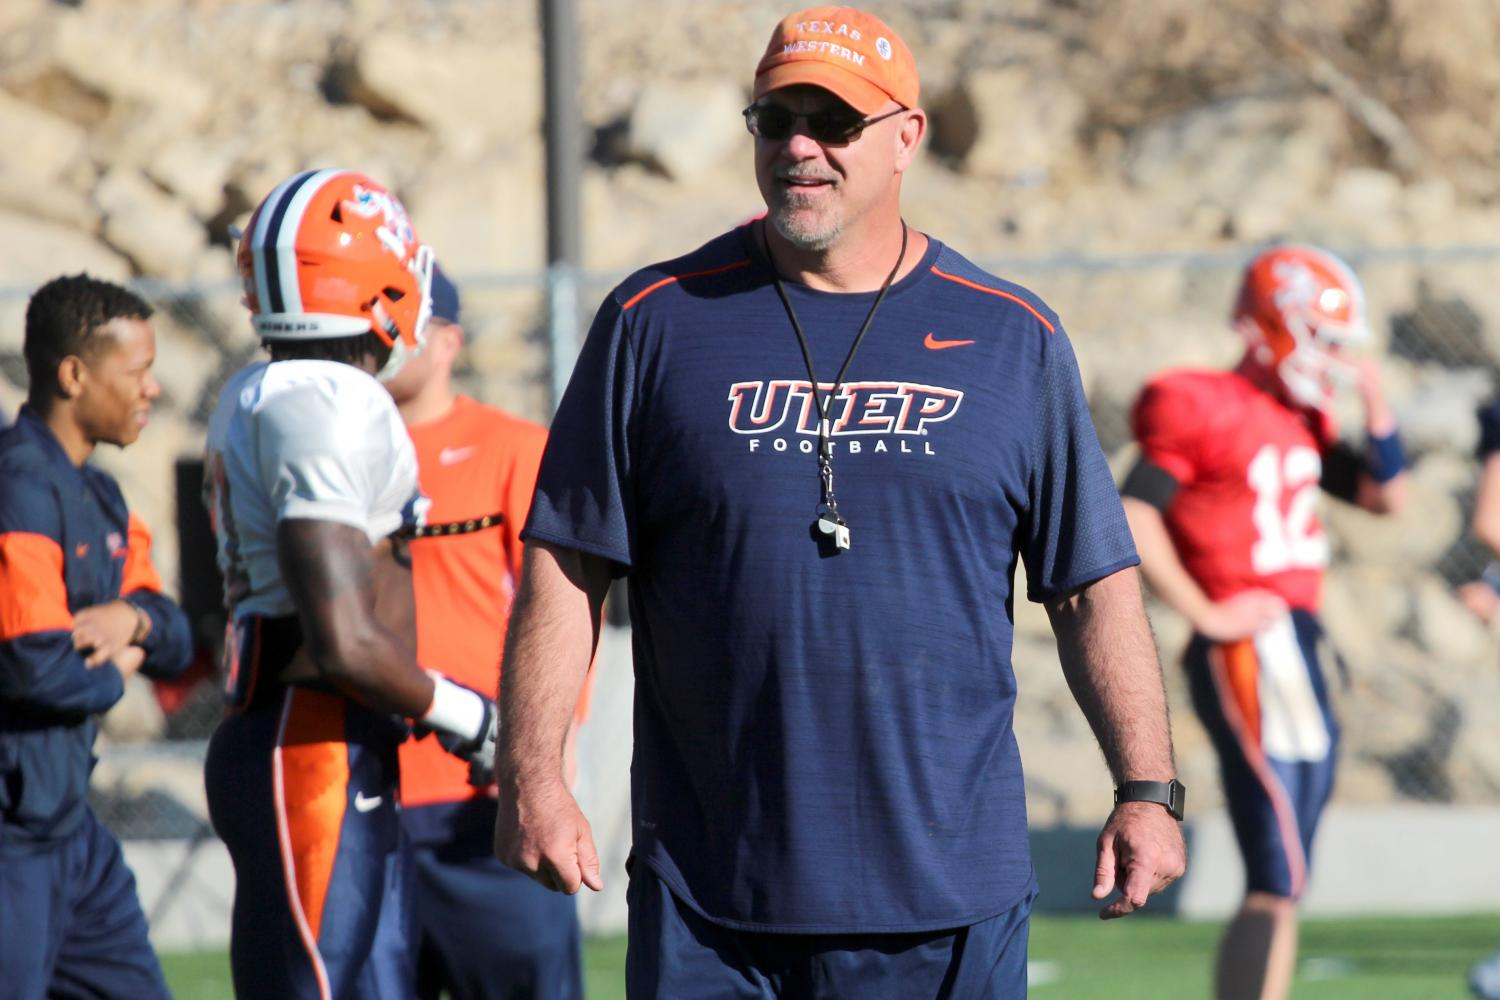 Head coach Sean Kugler showed optimism at the C-USA media day and talked about the team's off-season improvements.